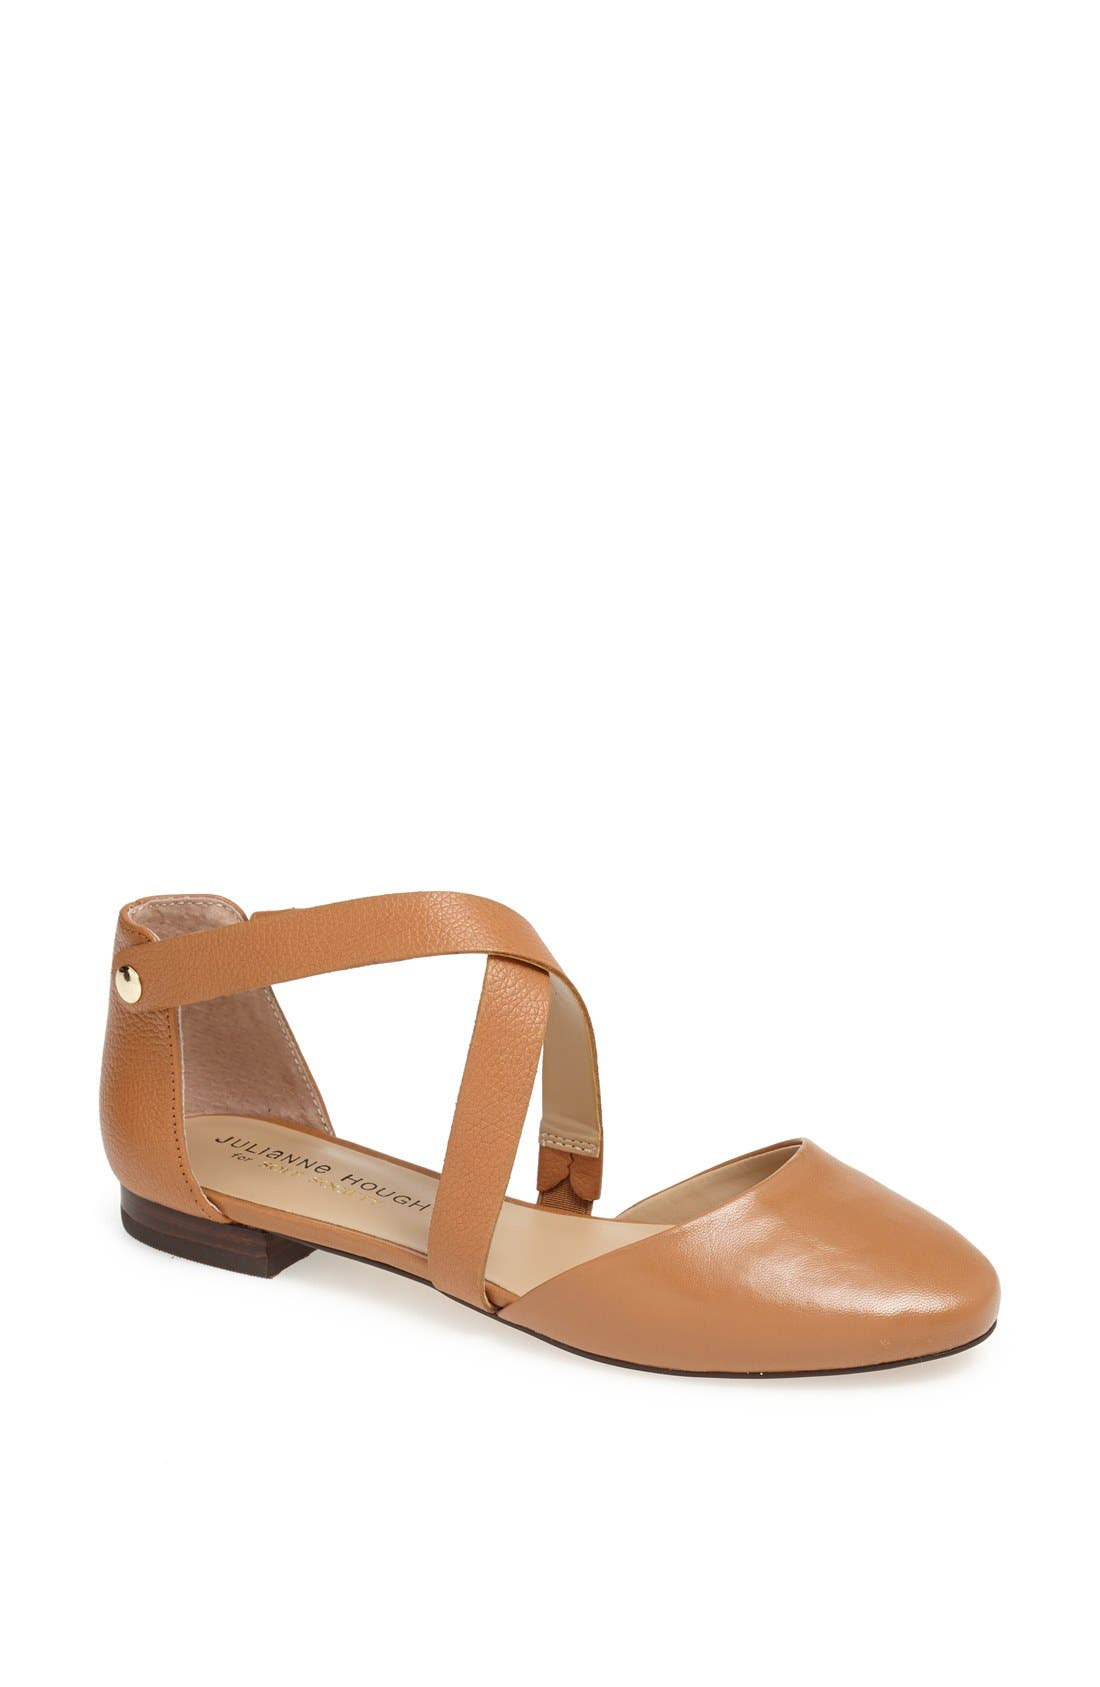 Alternate Image 1 Selected - Julianne Hough for Sole Society 'Ananda' Leather Flat